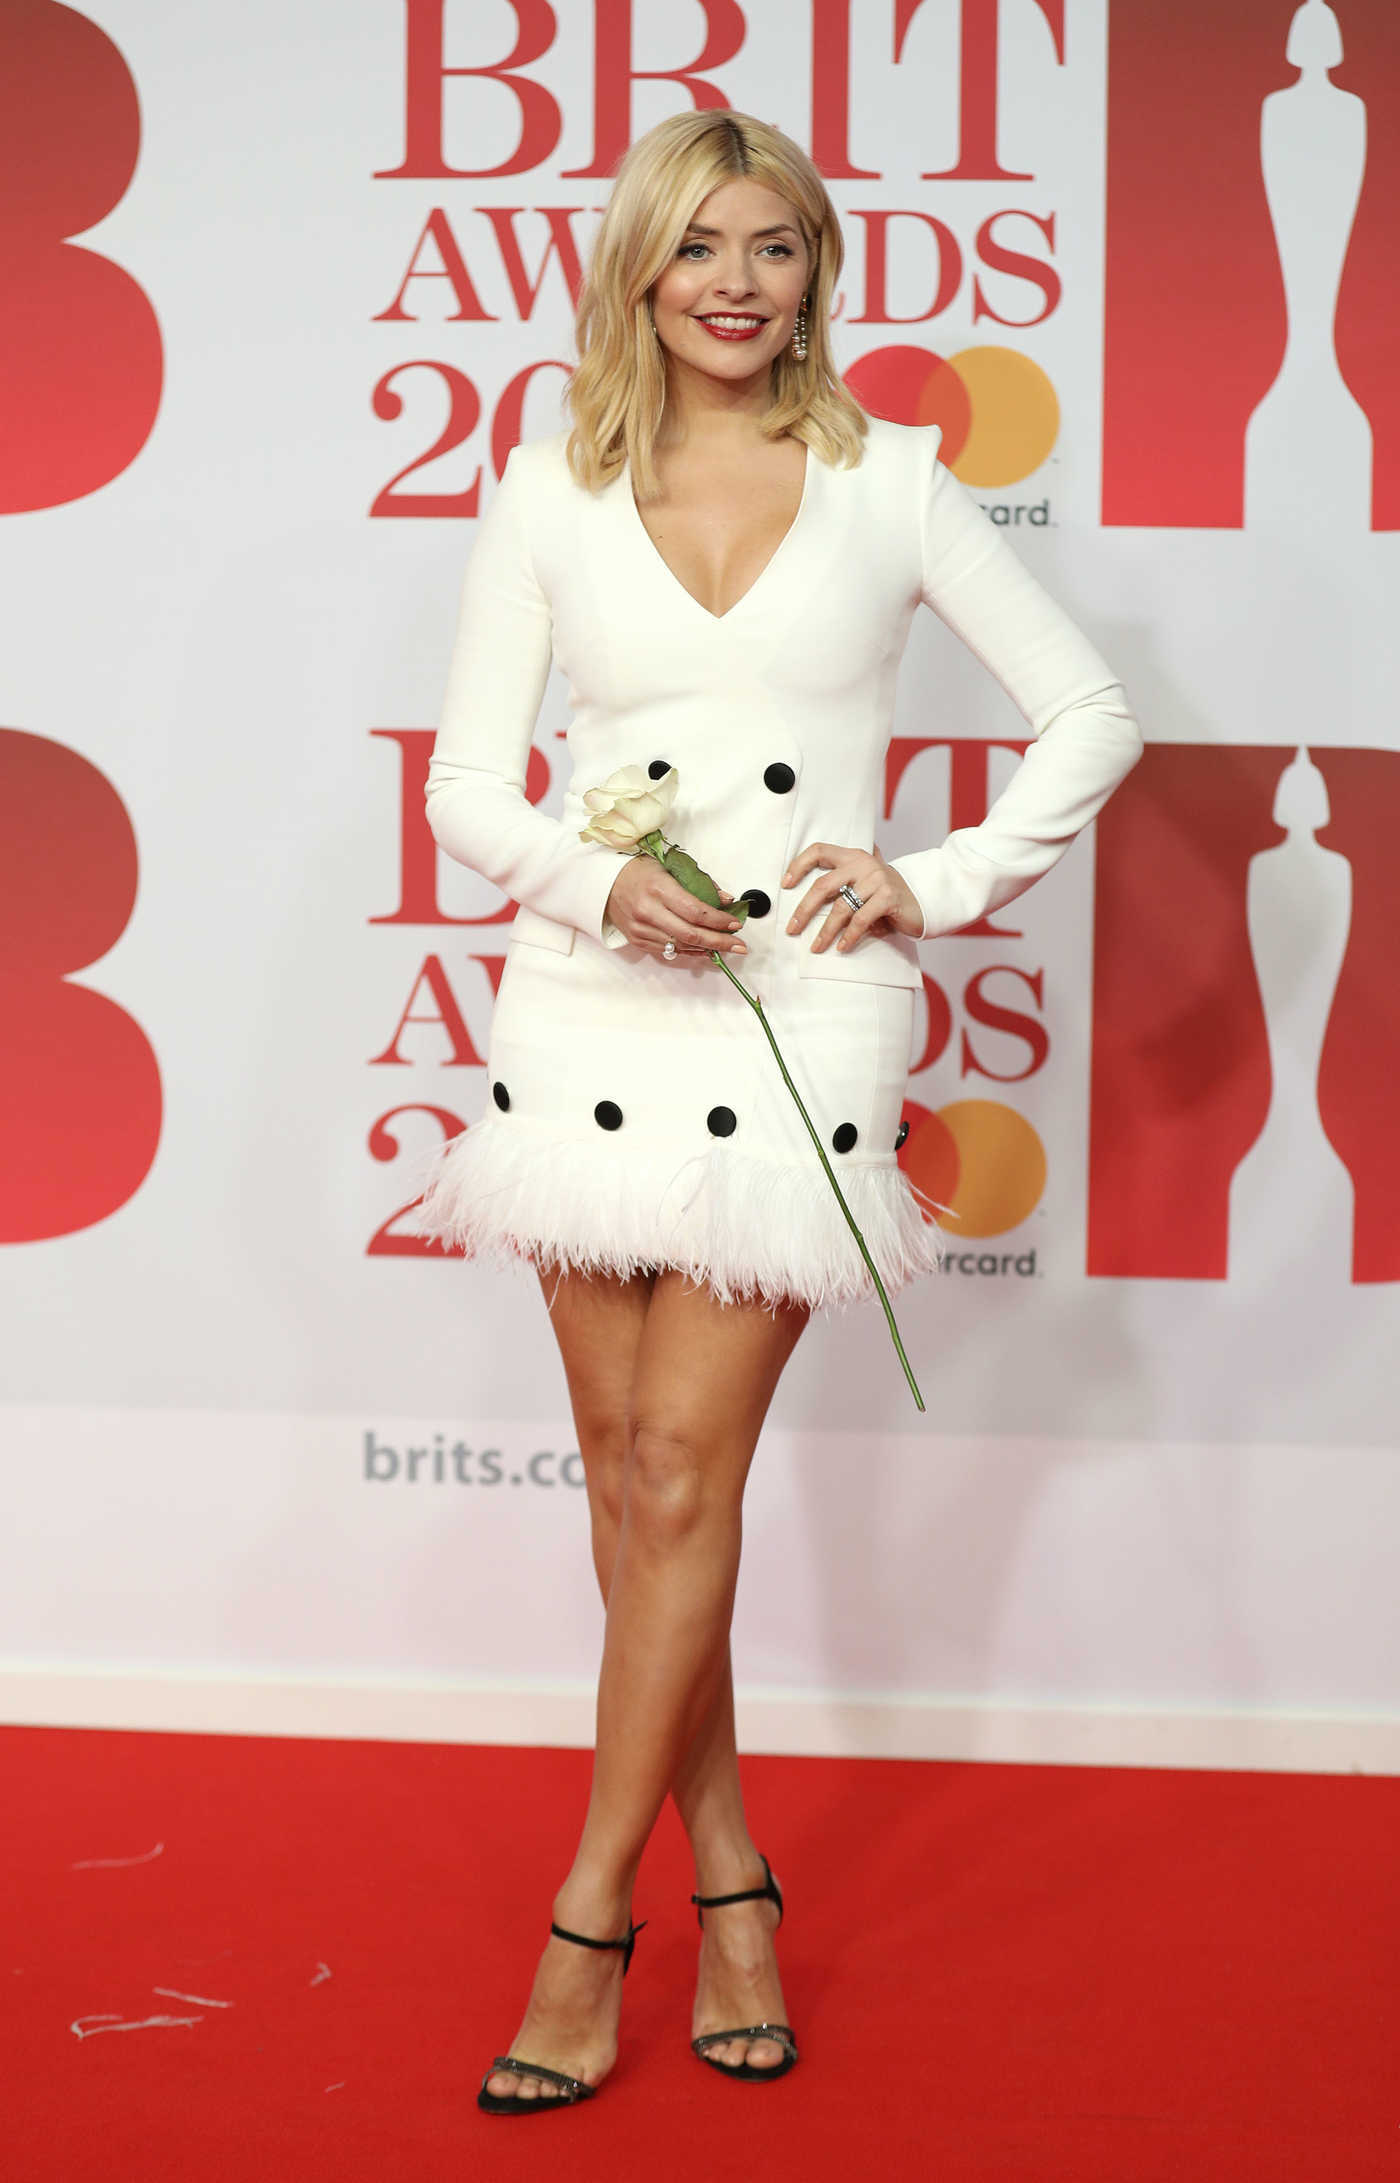 Holly Willoughby Attends the 2018 Brit Awards at the O2 Arena in London 02/21/2018